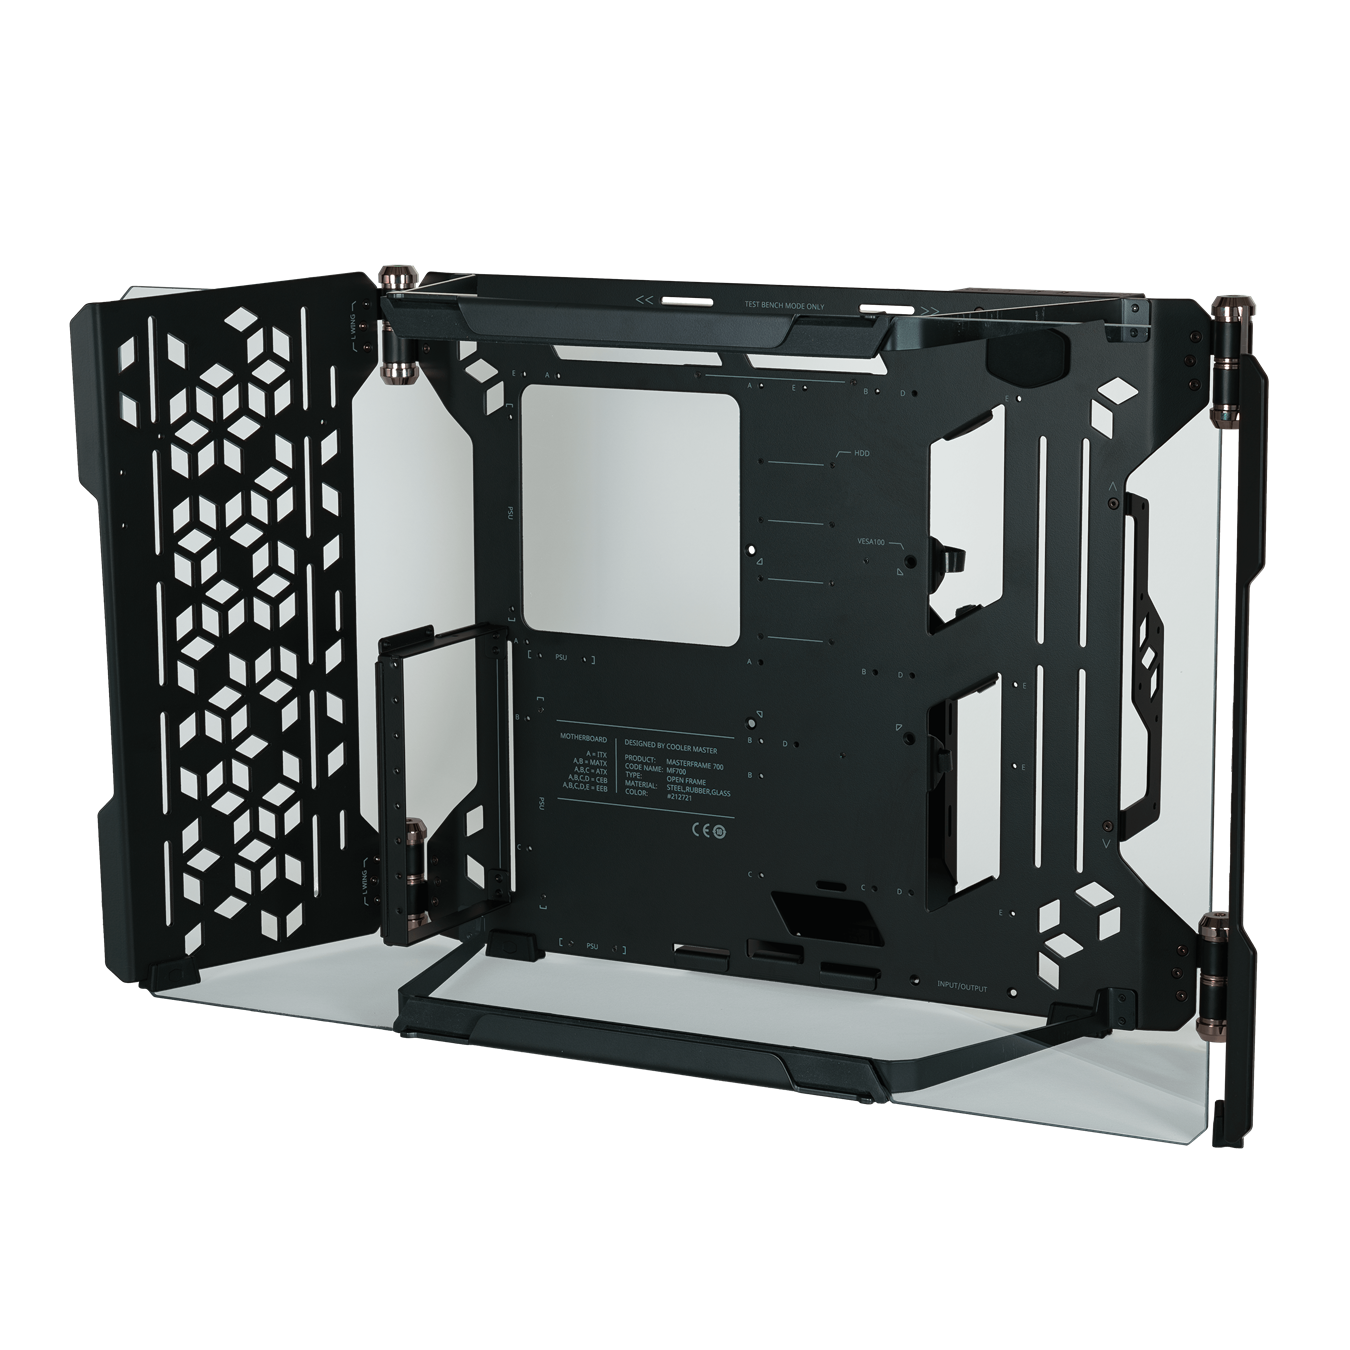 COOLER MASTER MASTERFRAME 700 FULL TOWER CUSTOM FRAME